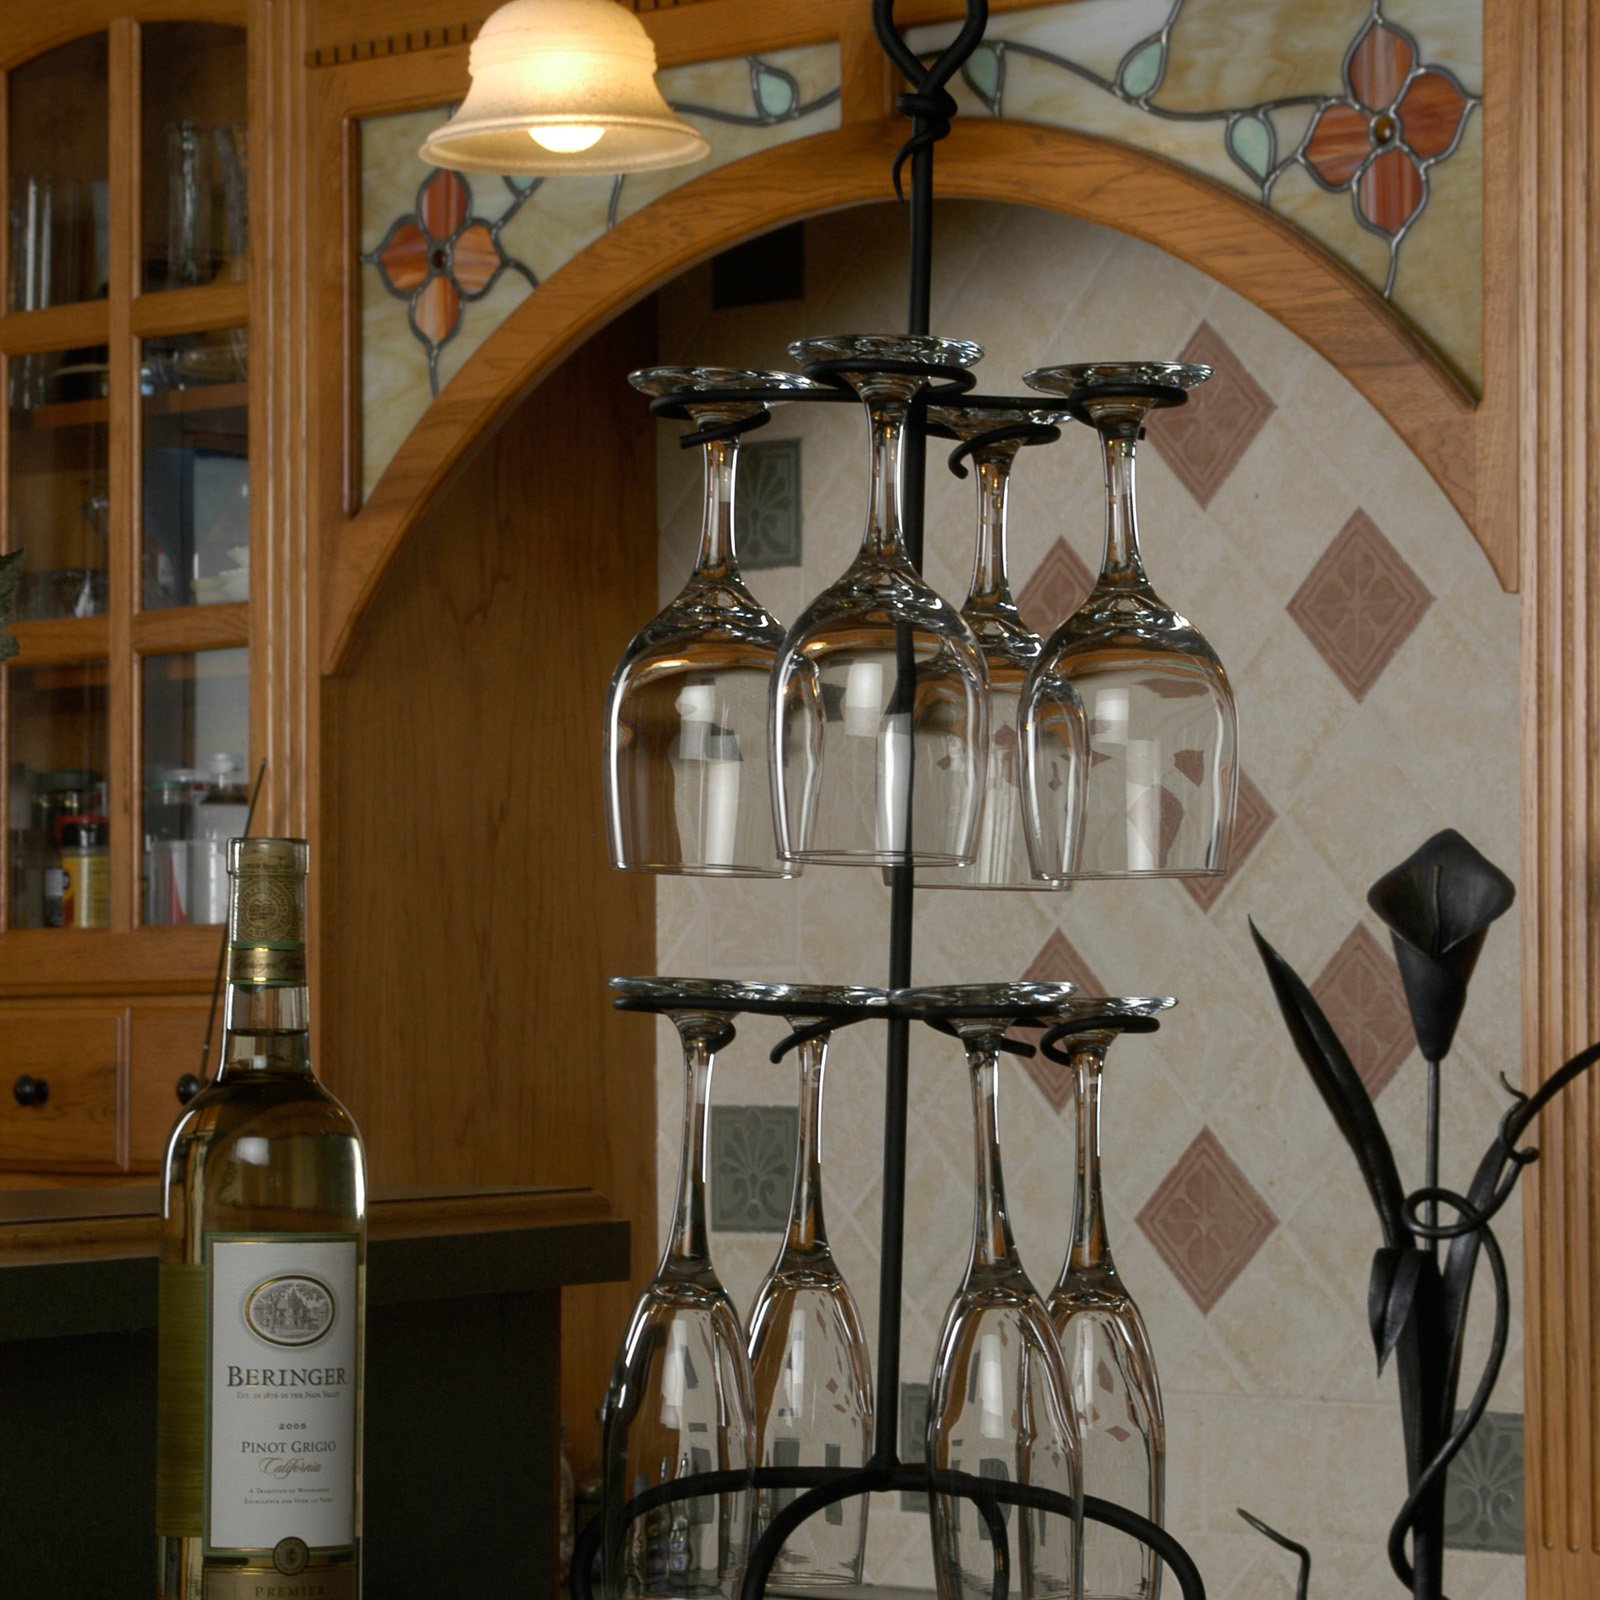 installing hanging cabinet rack wine under image glass dark an sterling oa sightly racks dazzling diy stemware